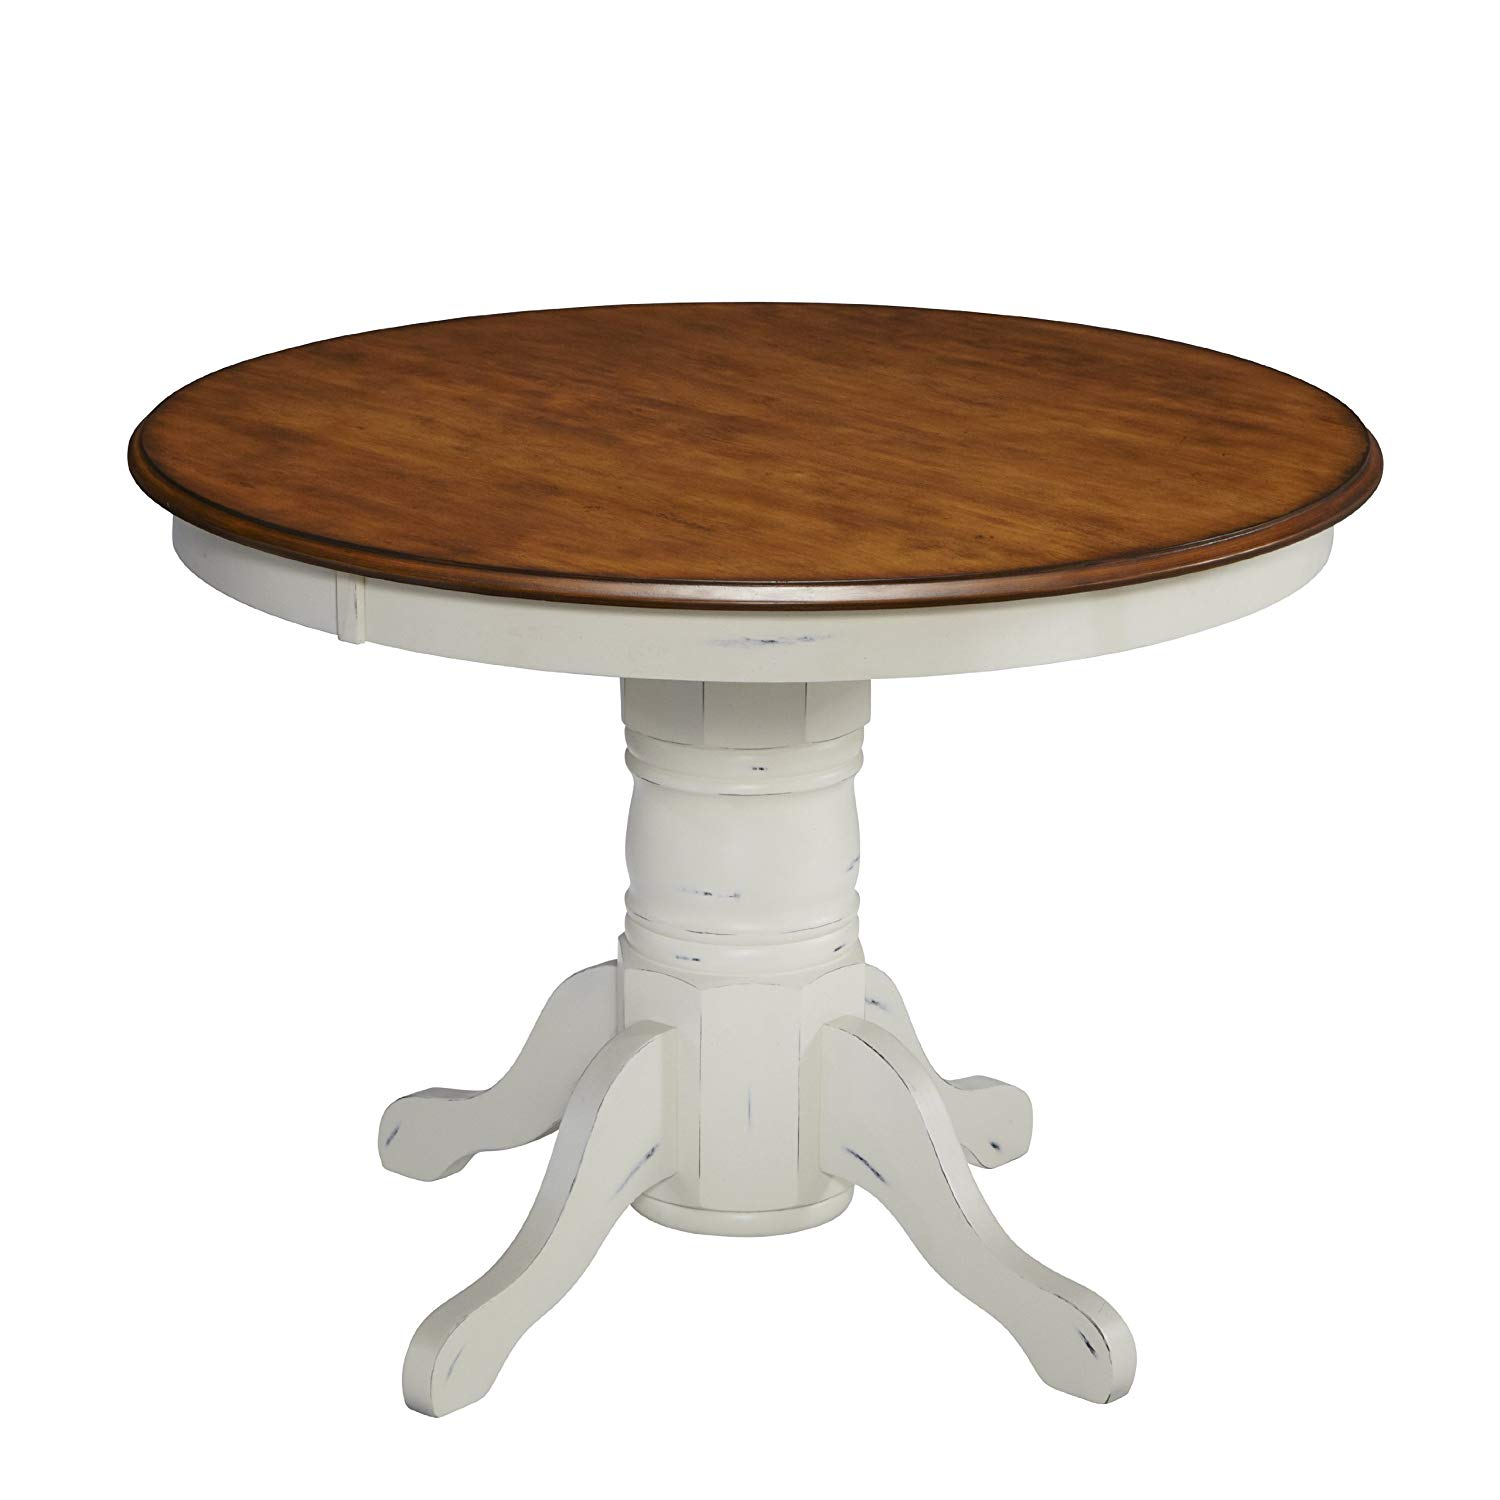 home styles french countryside round pedestal small half circle accent table oak and rubbed white tables modern with drawer floor lamp target wicker furniture chrome coffee legs